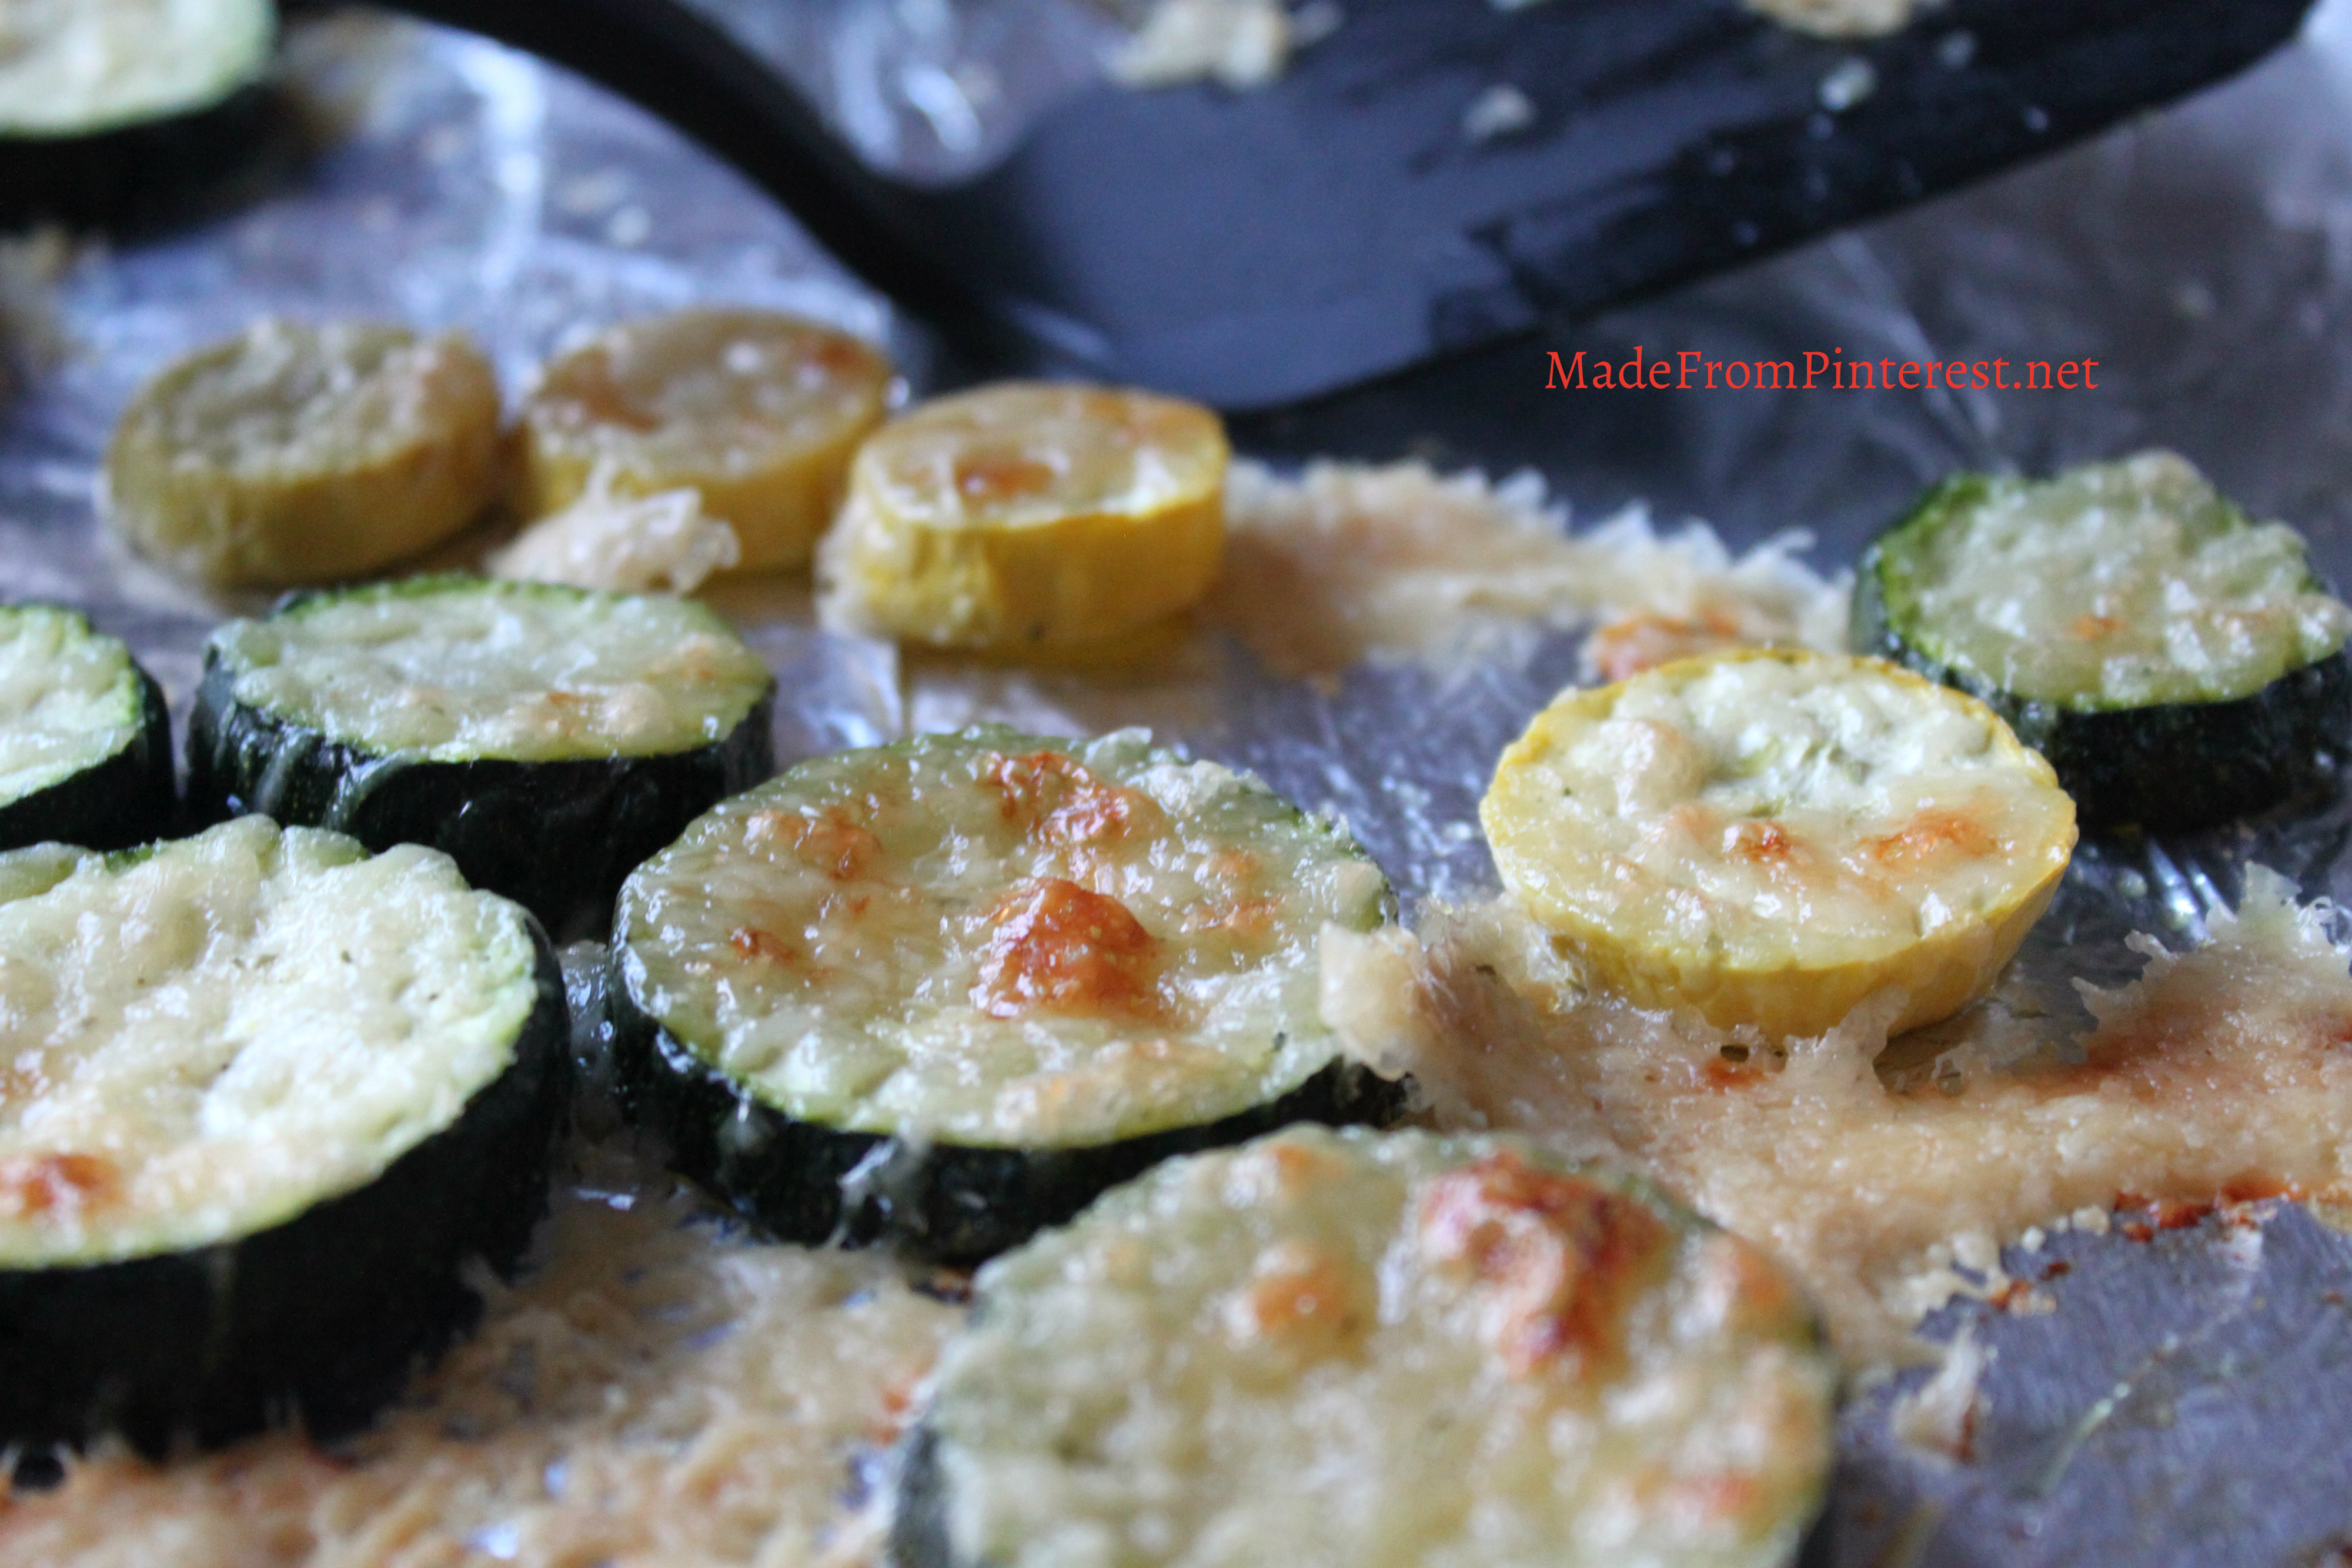 Garlic Parmesan Roasted Squash - Made From Pinterest